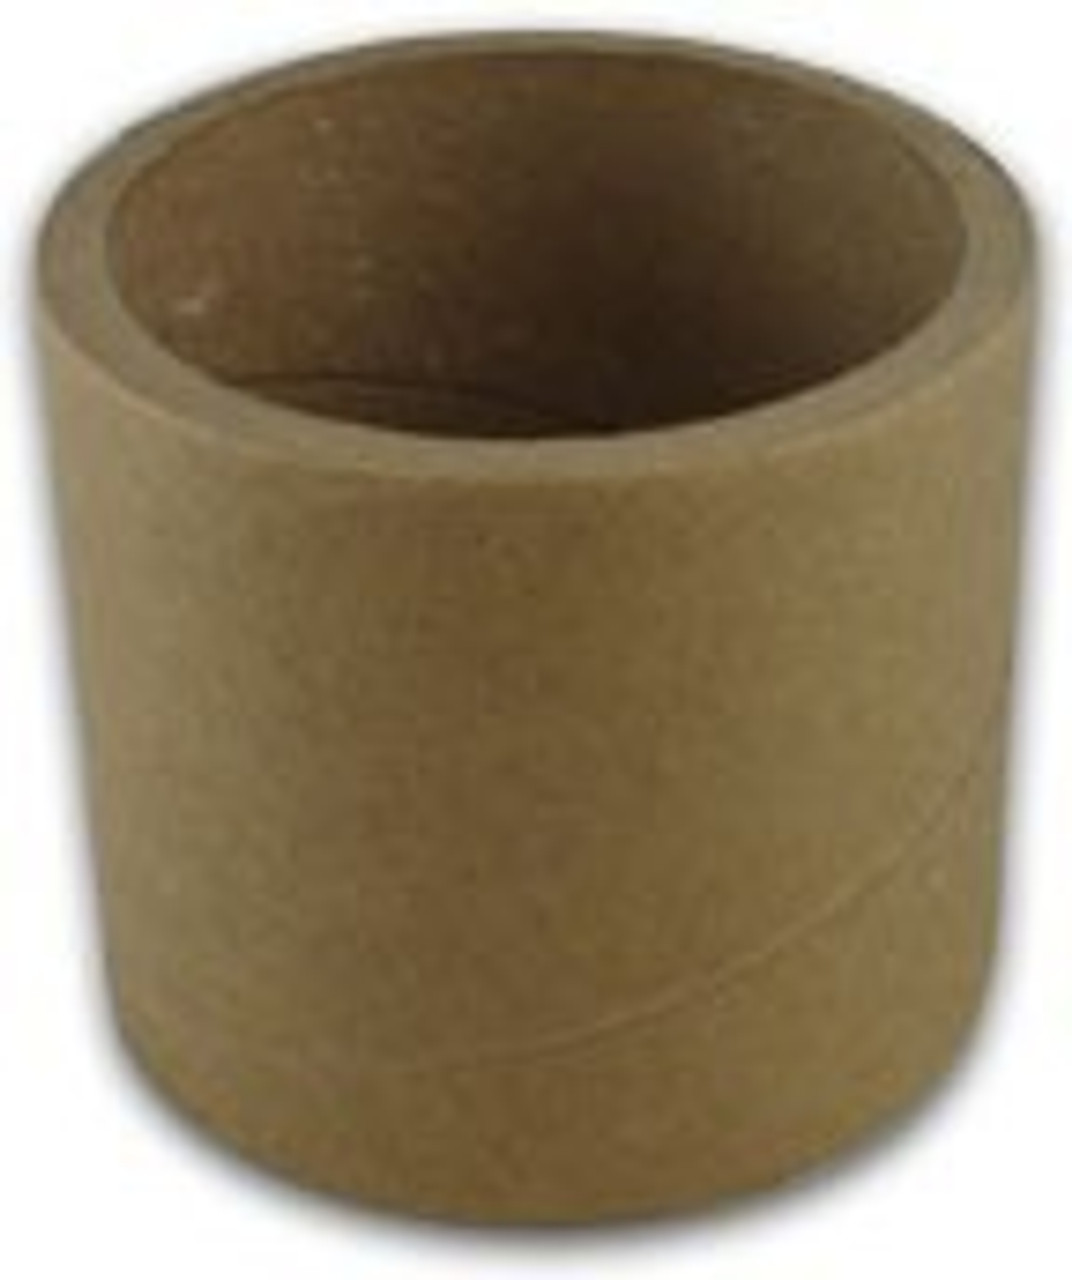 "Empty Cores 3"" X 4 1/8"" wide - Box of 25 